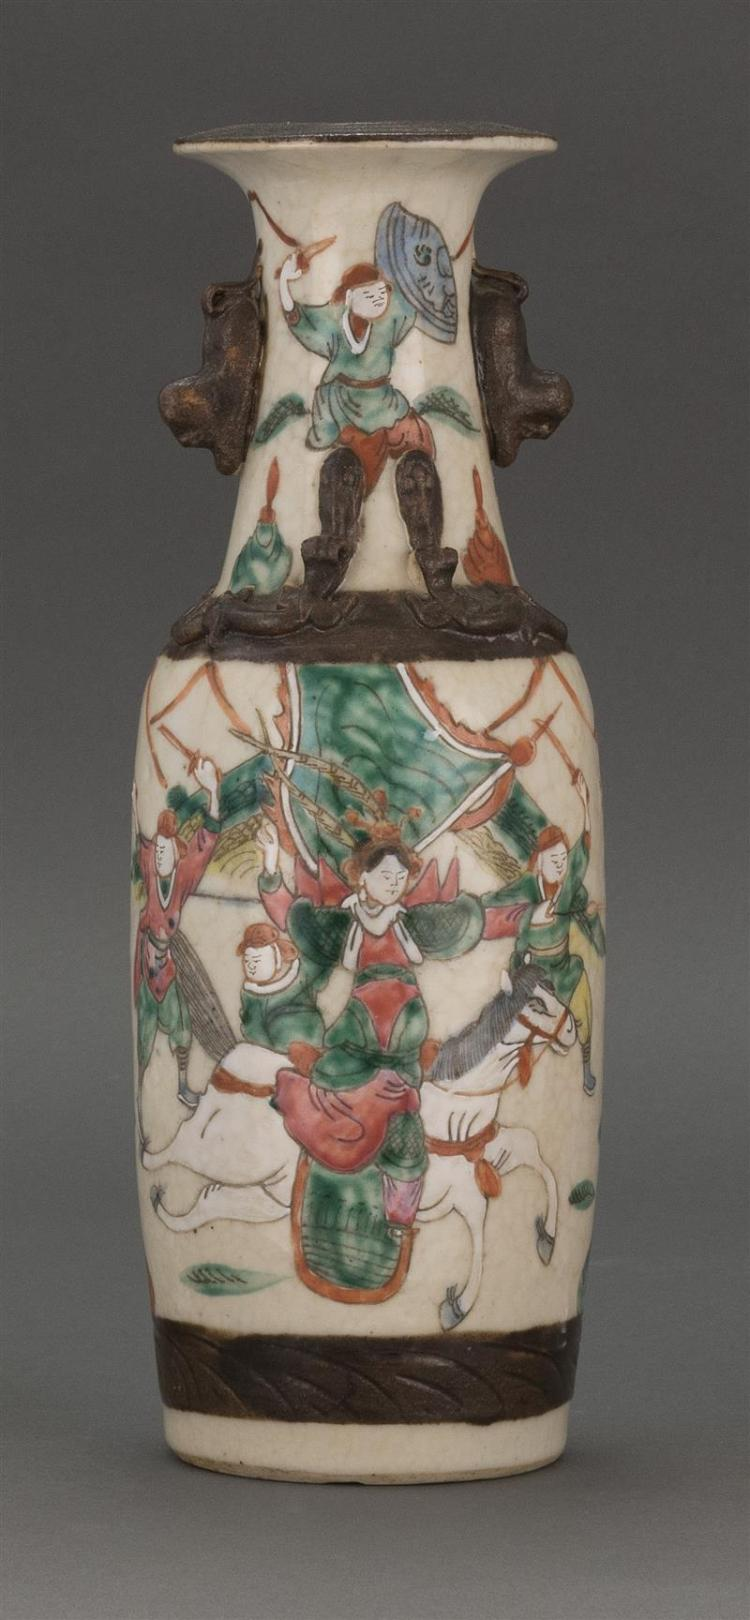 POLYCHROME PORCELAIN VASE With decoration of warriors in a landscape. Height 11.5